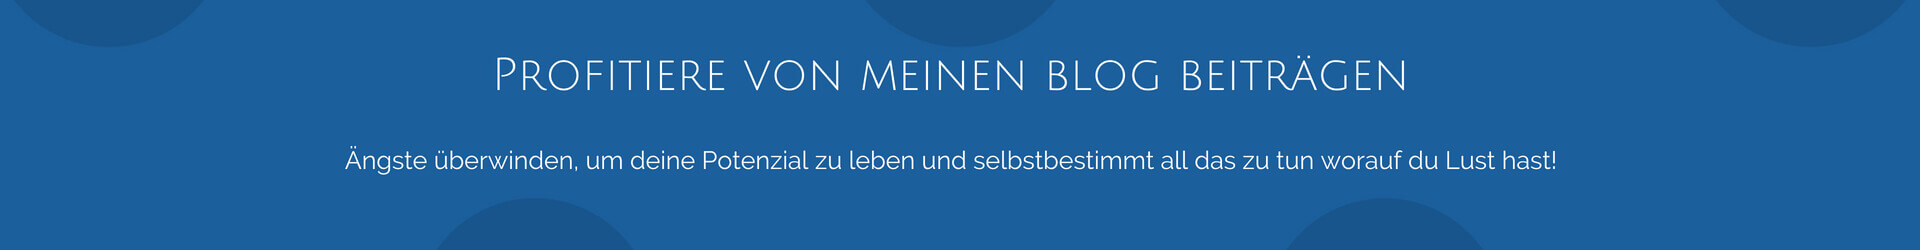 Blog Ängste